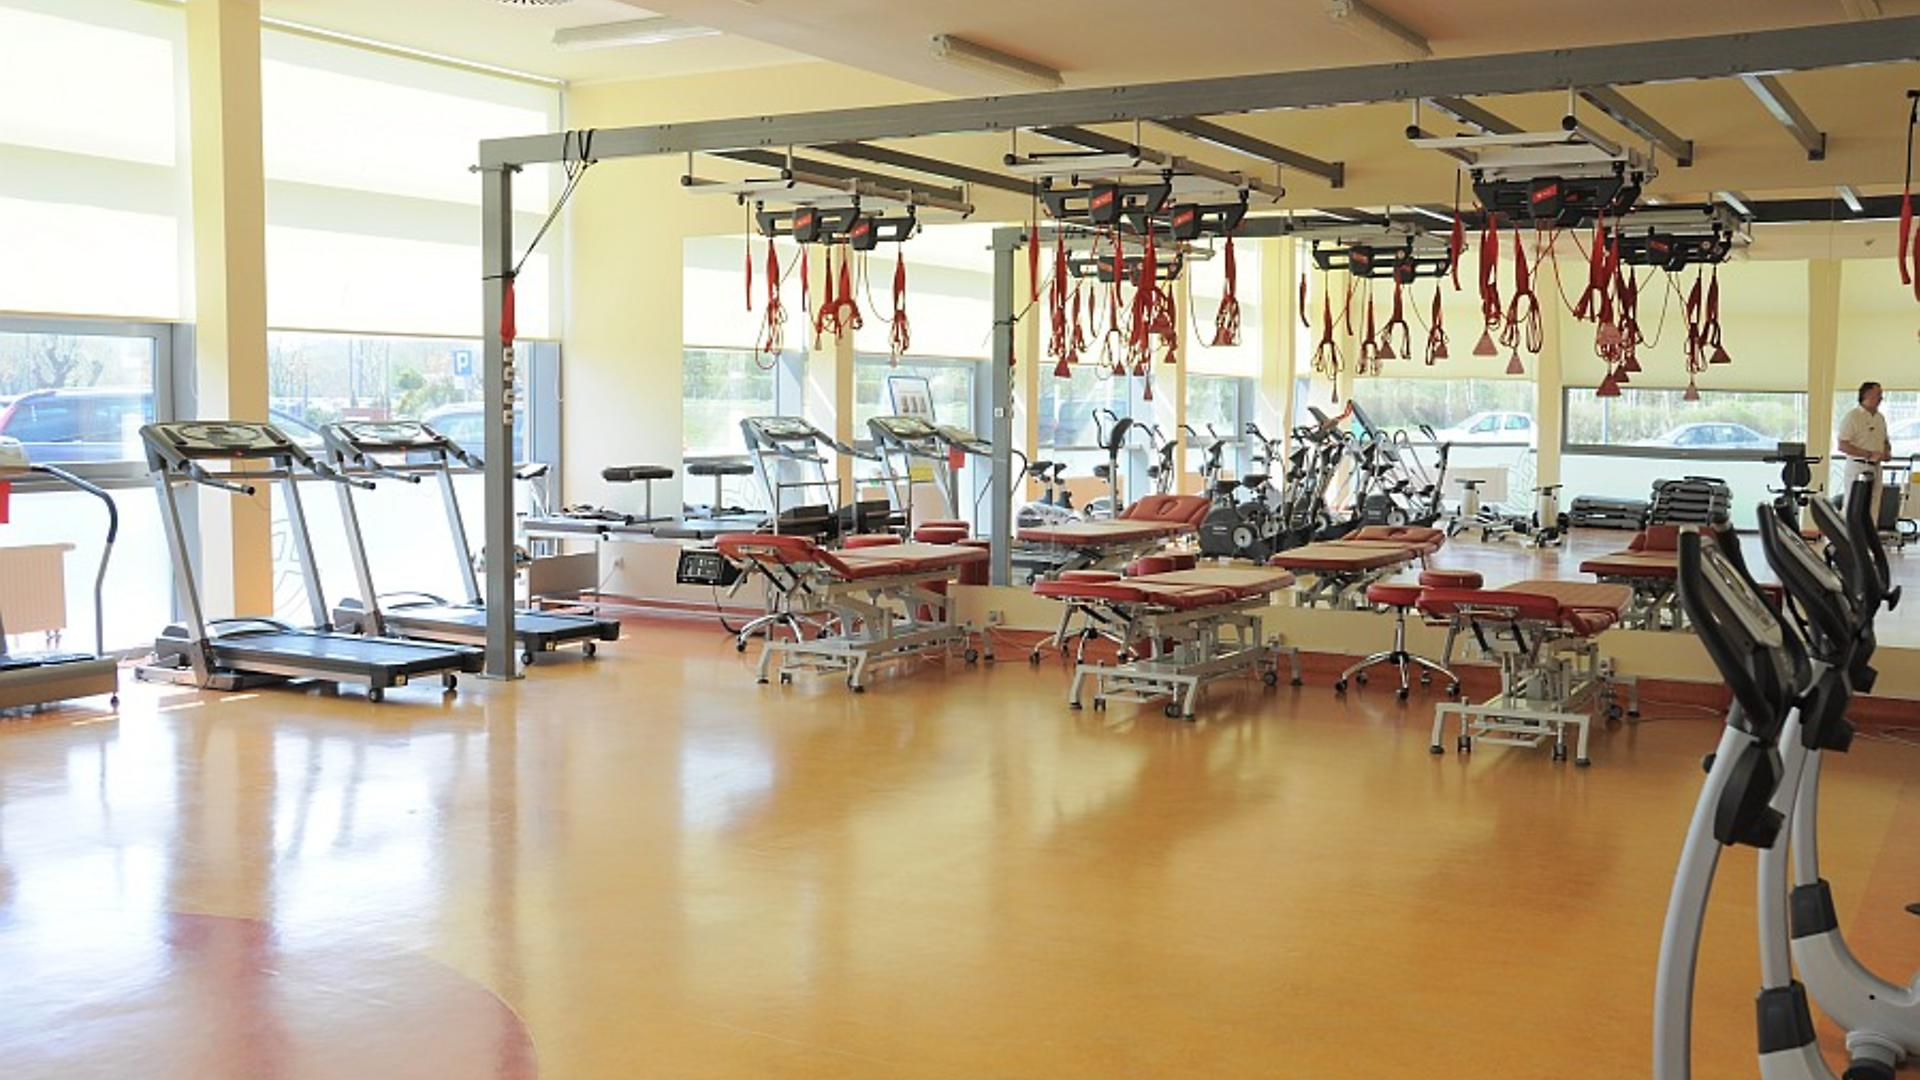 Hd_erholungszentrum-arka-medical-spa-in-kolobrzeg---kolberg---fitnessraum-1